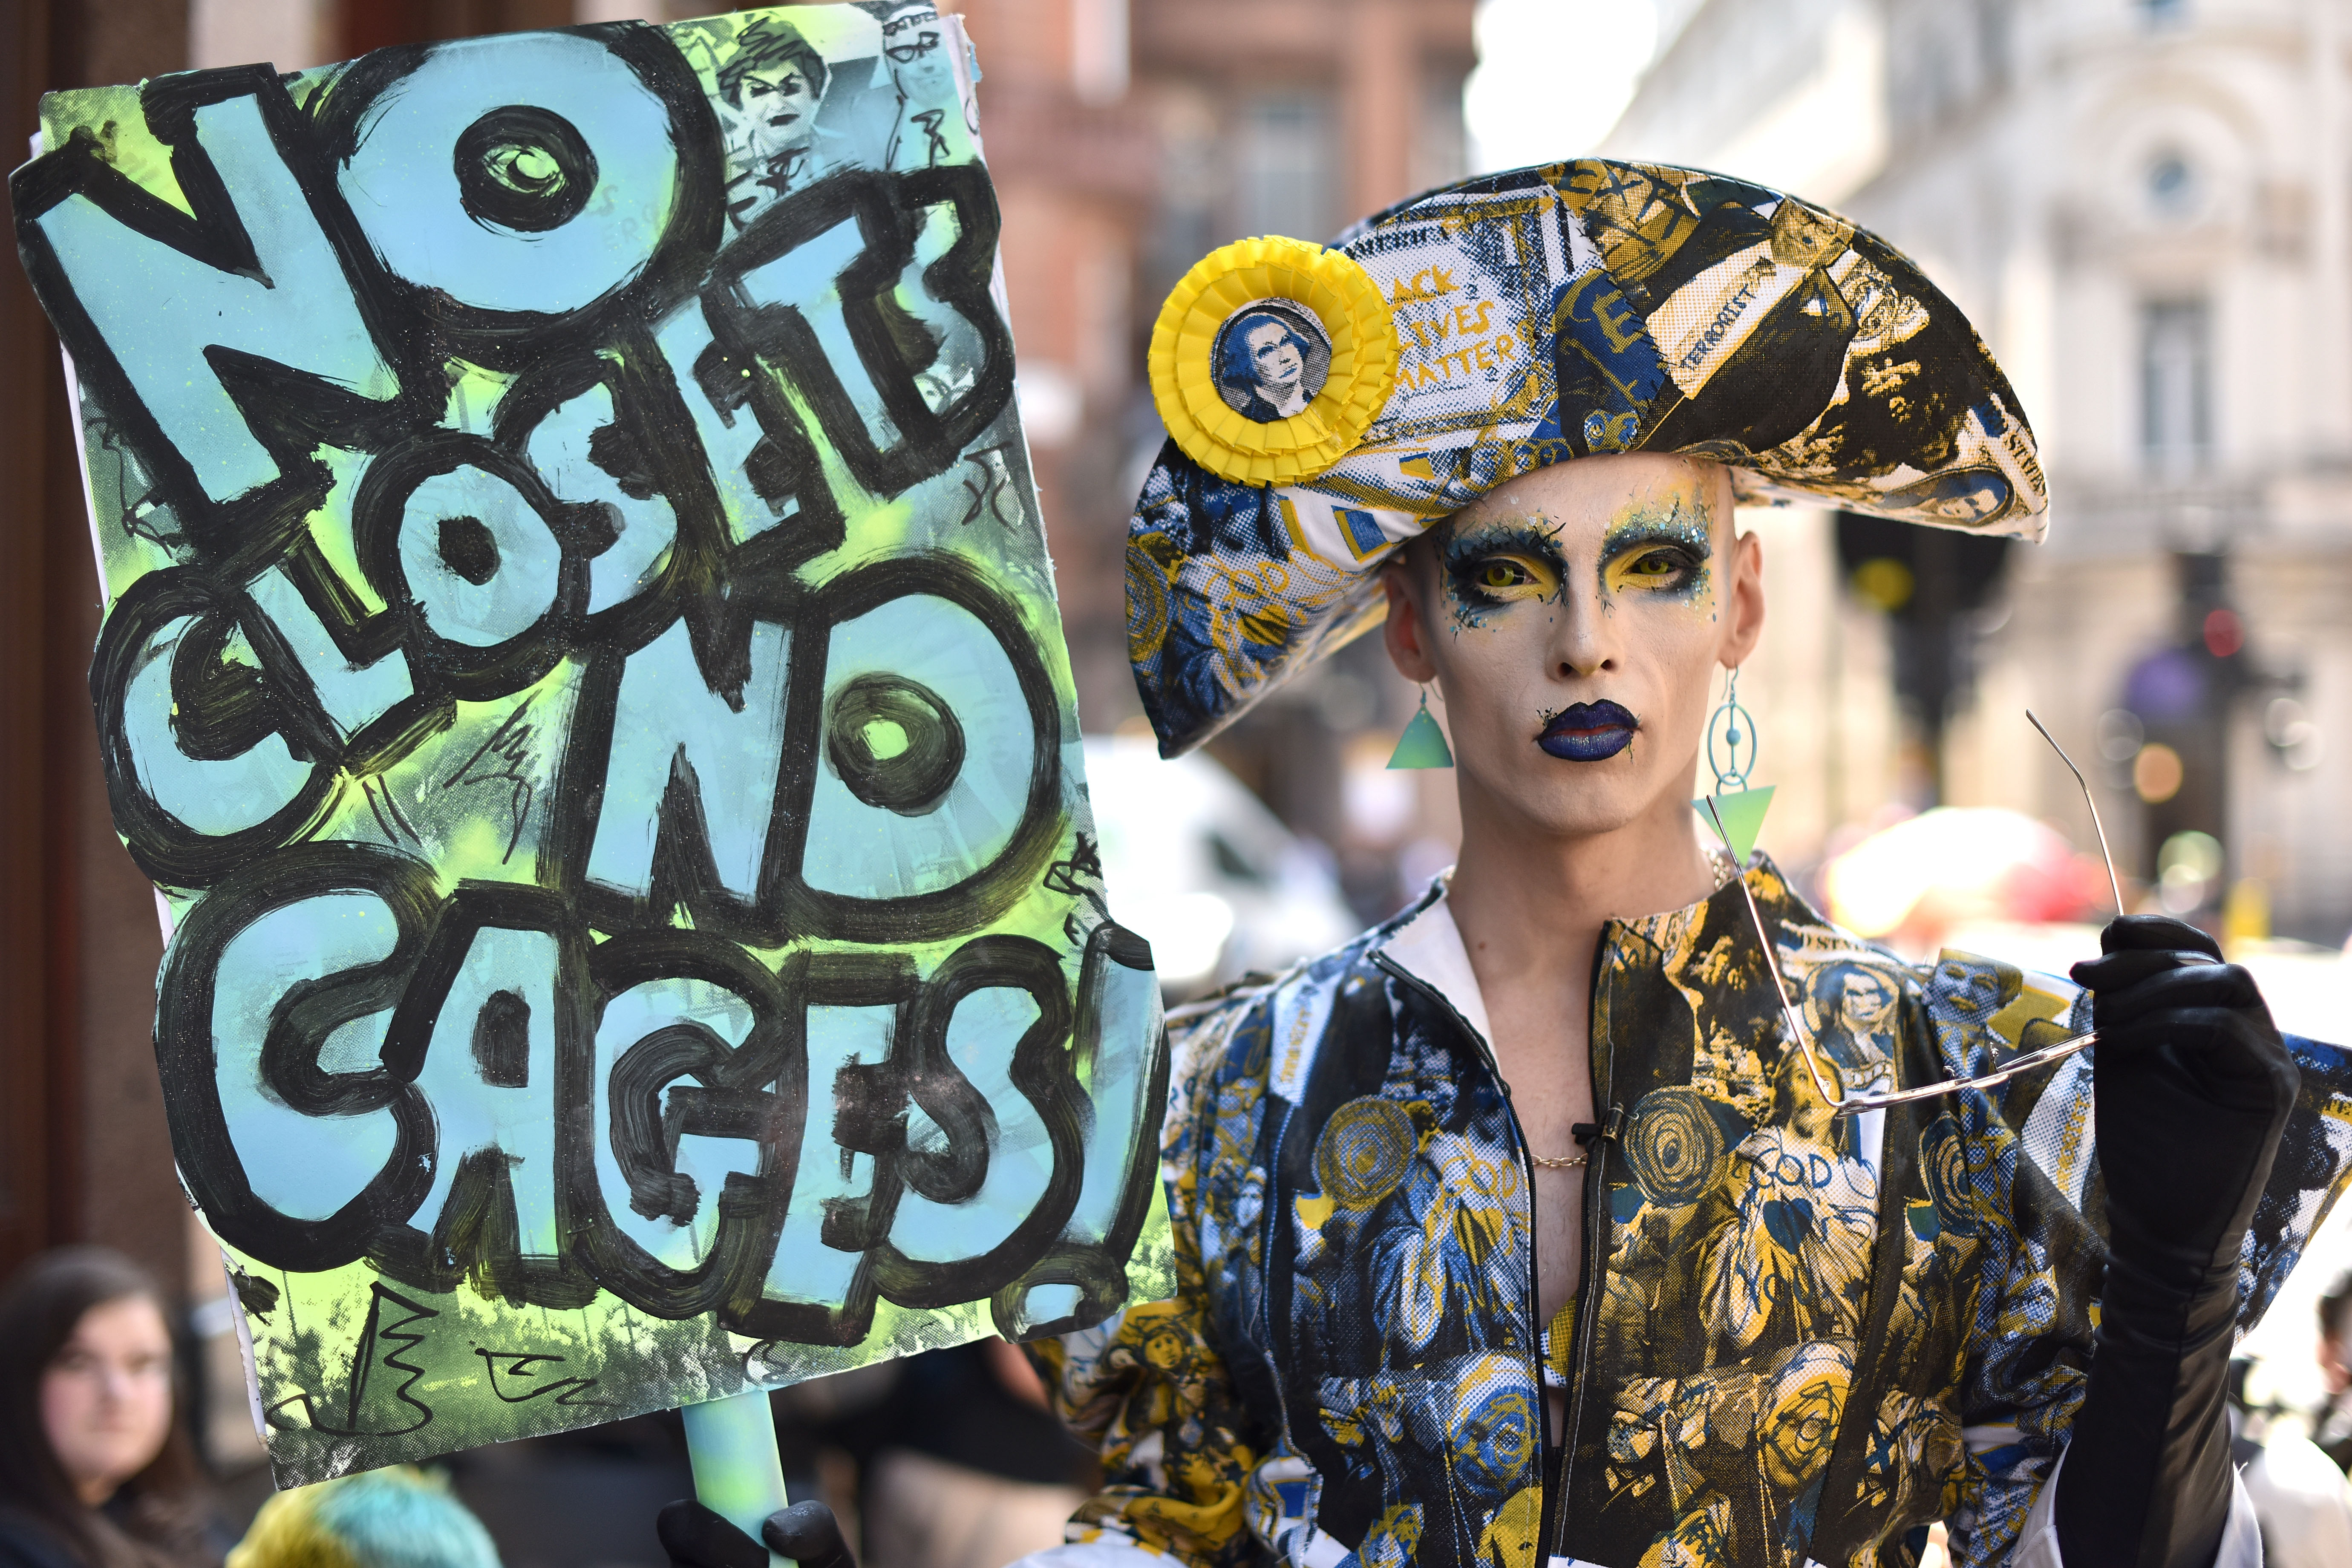 Drag Queen Cheddar Gorgeous attends the Drag Protest Parade LGBTQi+ March against Trump on July 13, 2018 in London, United Kingdom. Drag queens hold a mass rally in Central London against the Trump administration's record on LGBT rights including a ban on transgender personnel.